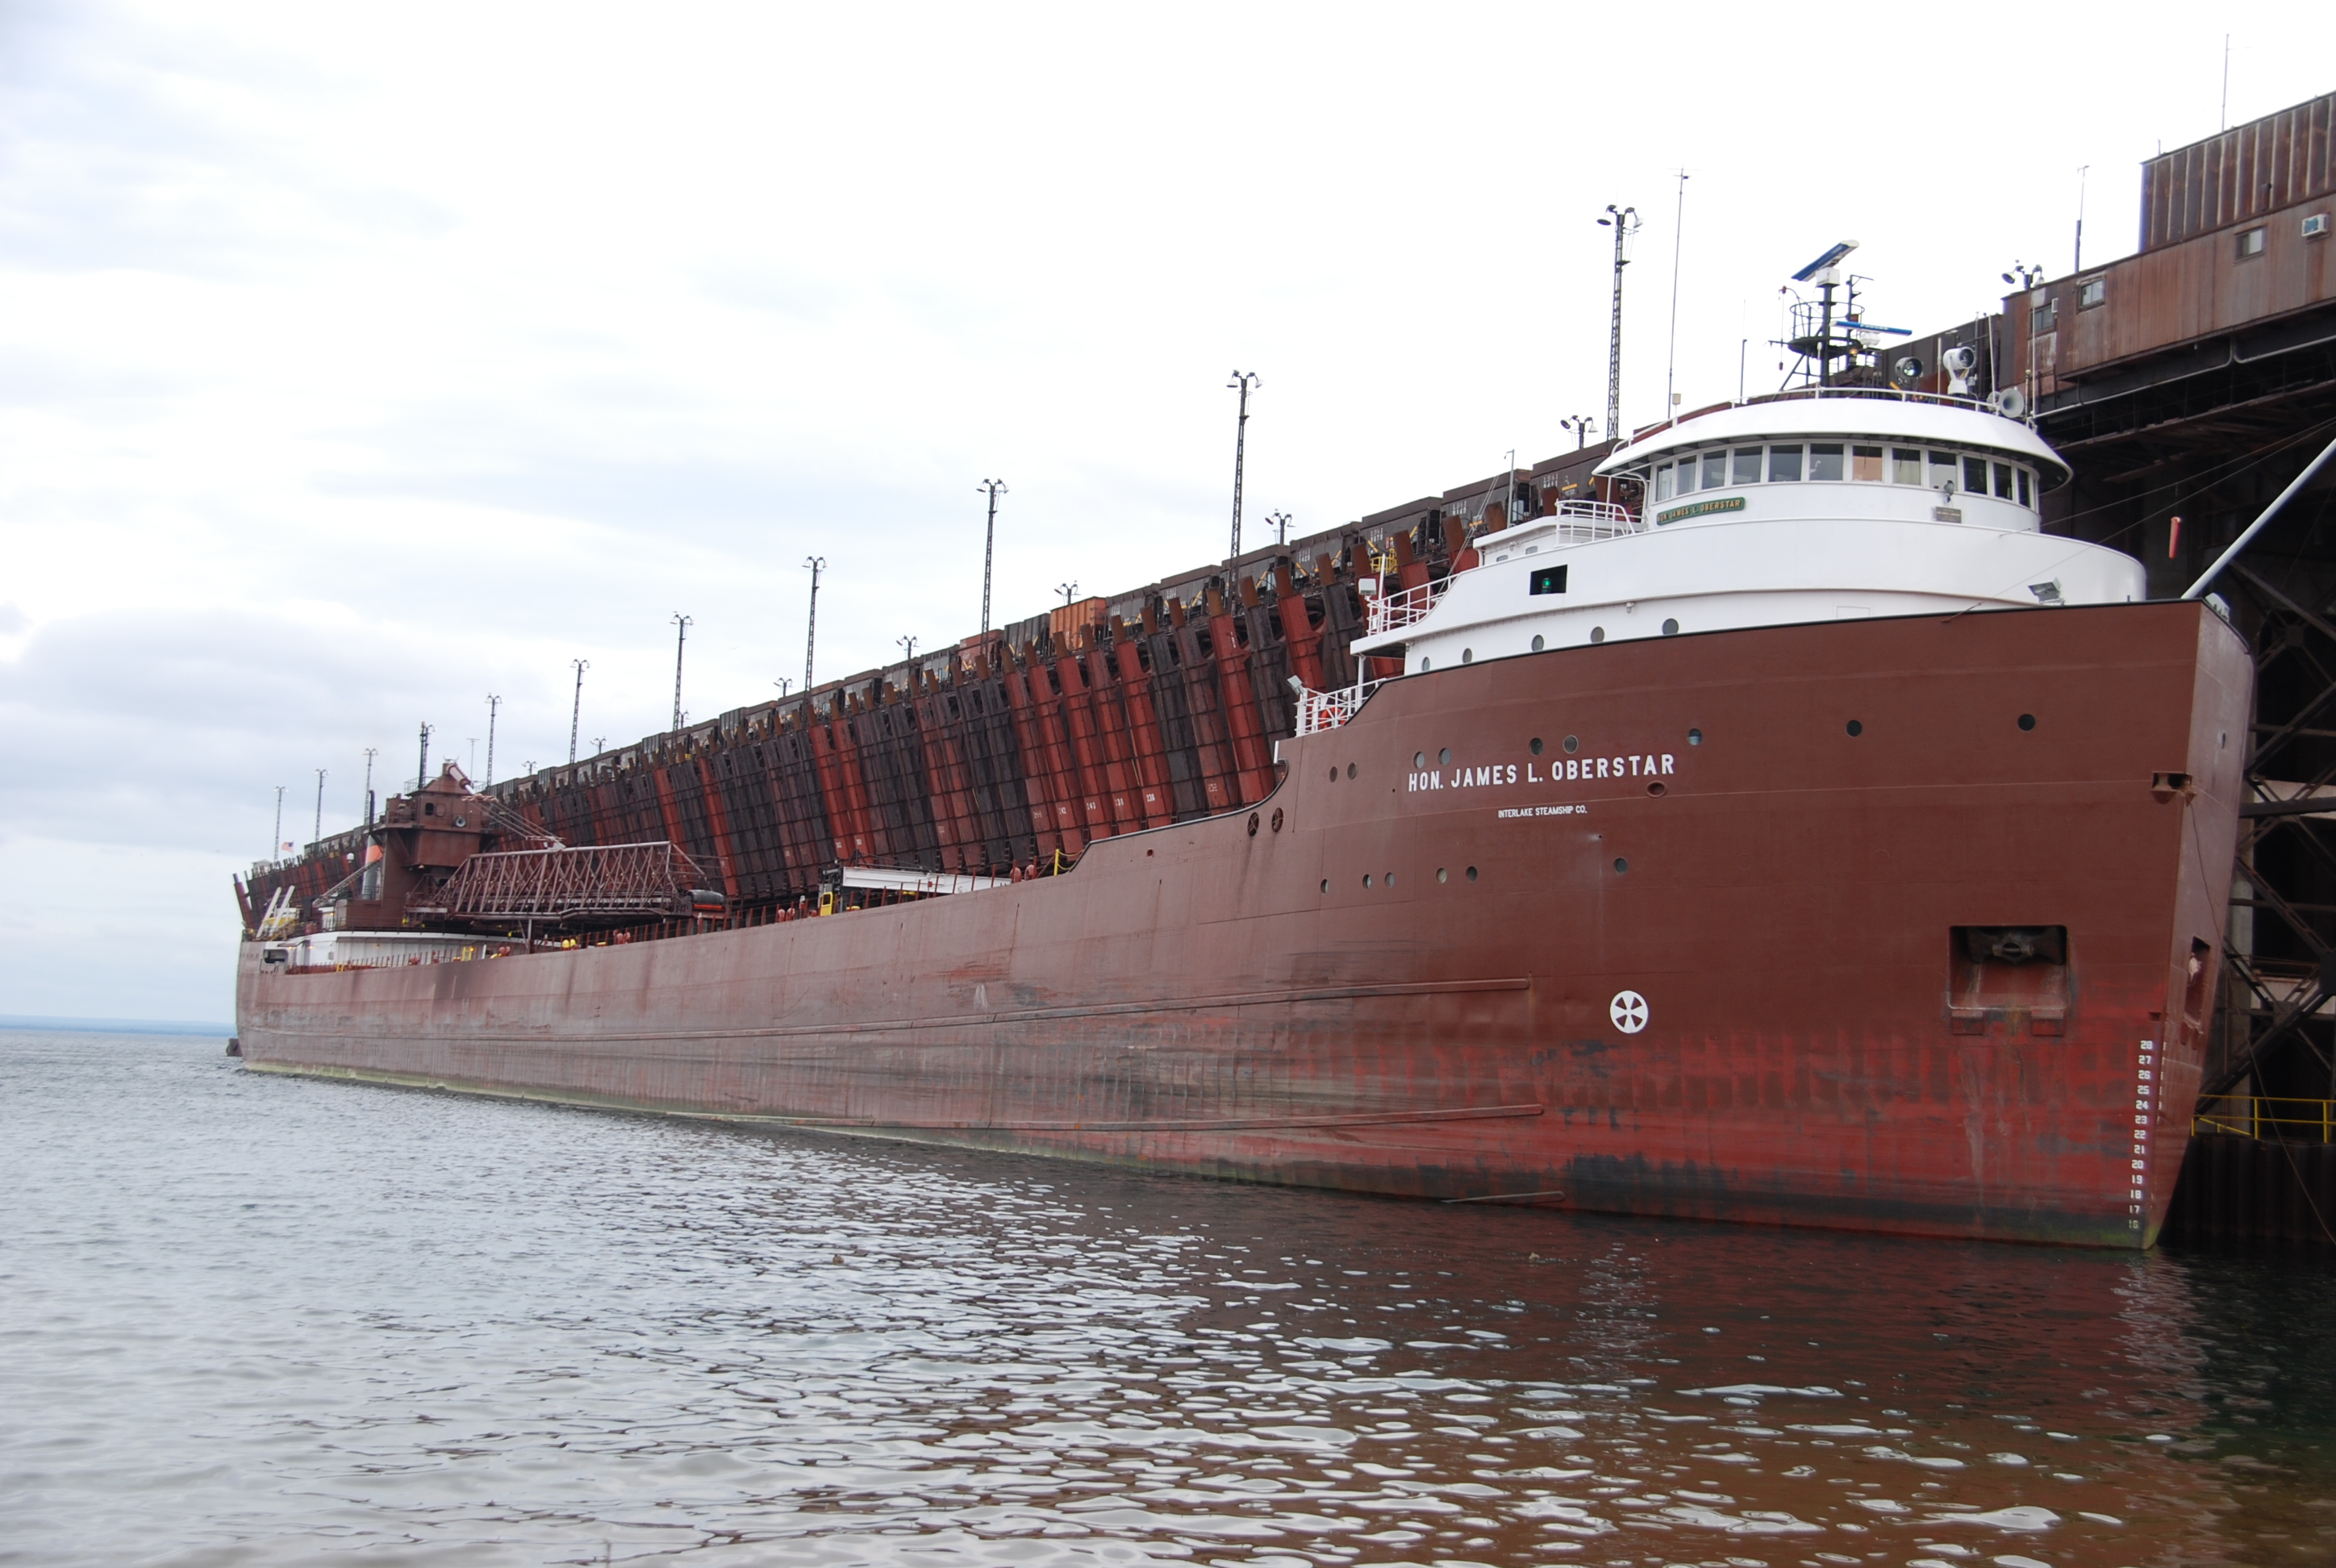 FileThe Hon James L Oberstar Iron Ore Freighter At The